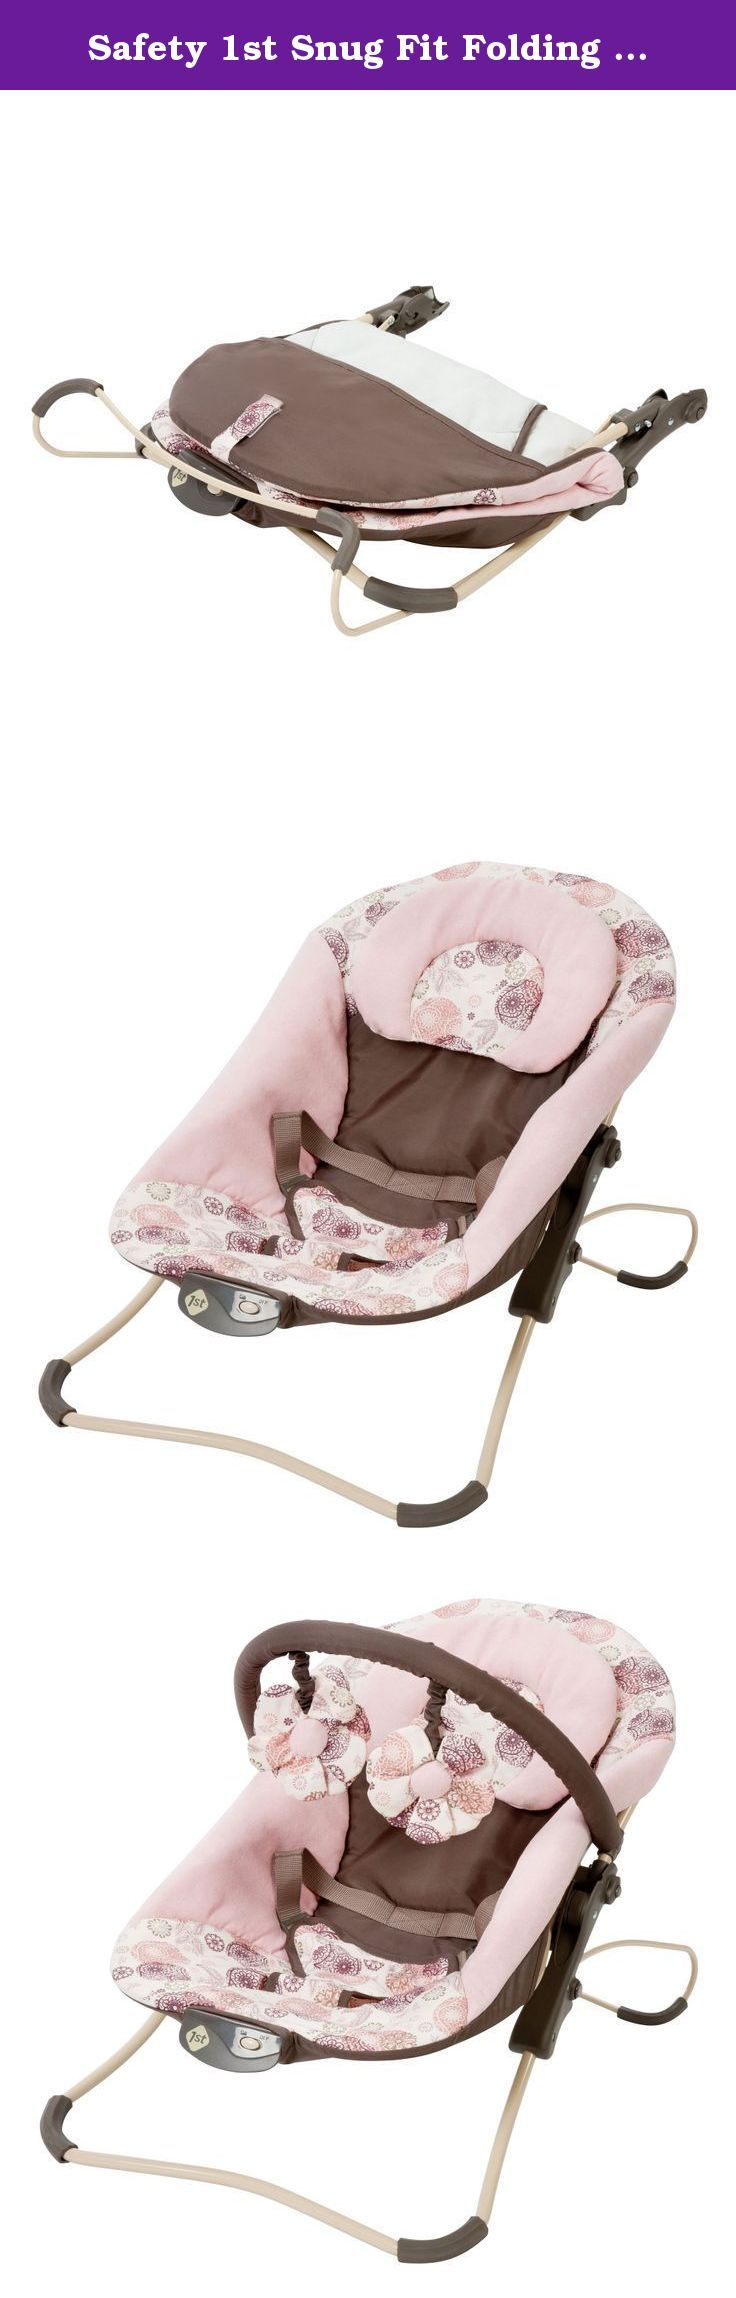 Safety 1st Snug Fit Folding Infant Seat, Yardley. Give your bouncing baby a comfortable seat in the Yardley snug fit folding infant seat. Toy bar with 2 fun toys.